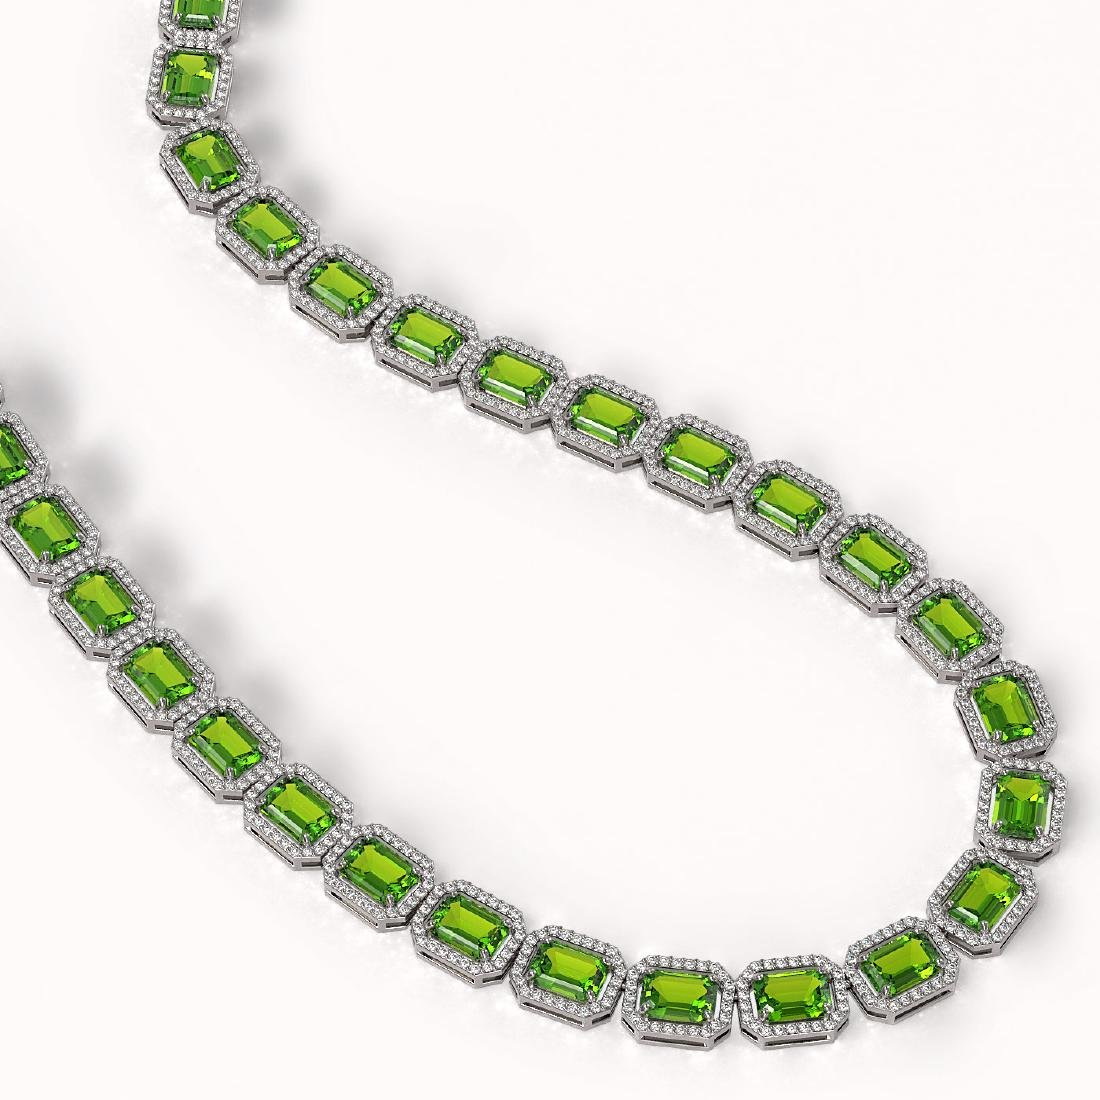 57.3 CTW Peridot & Diamond Halo Necklace 10K White Gold - 2